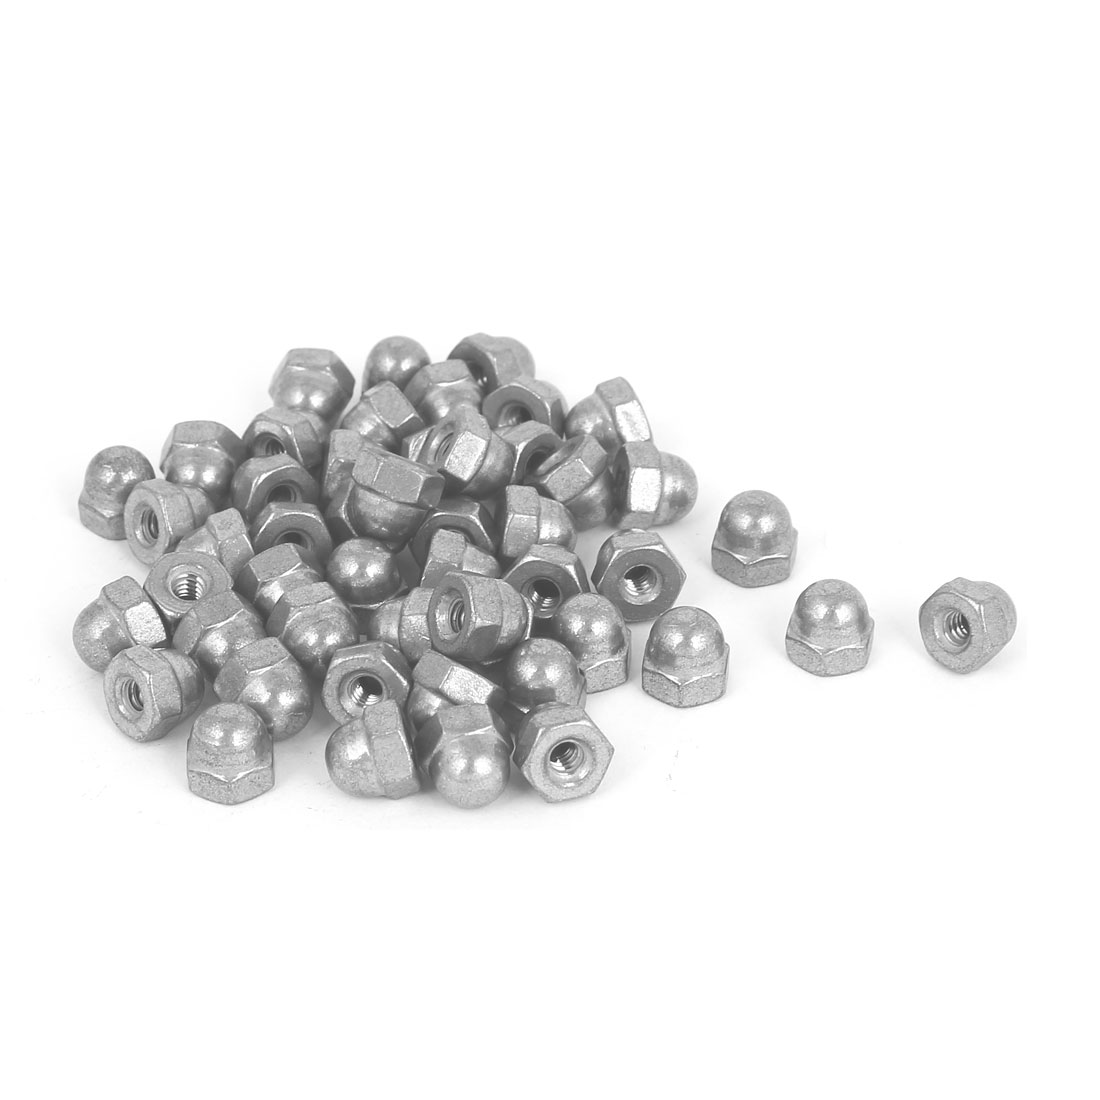 6#-32 304 Stainless Steel Dome Head Cap Hexagon Nuts Silver Tone 50 Pcs